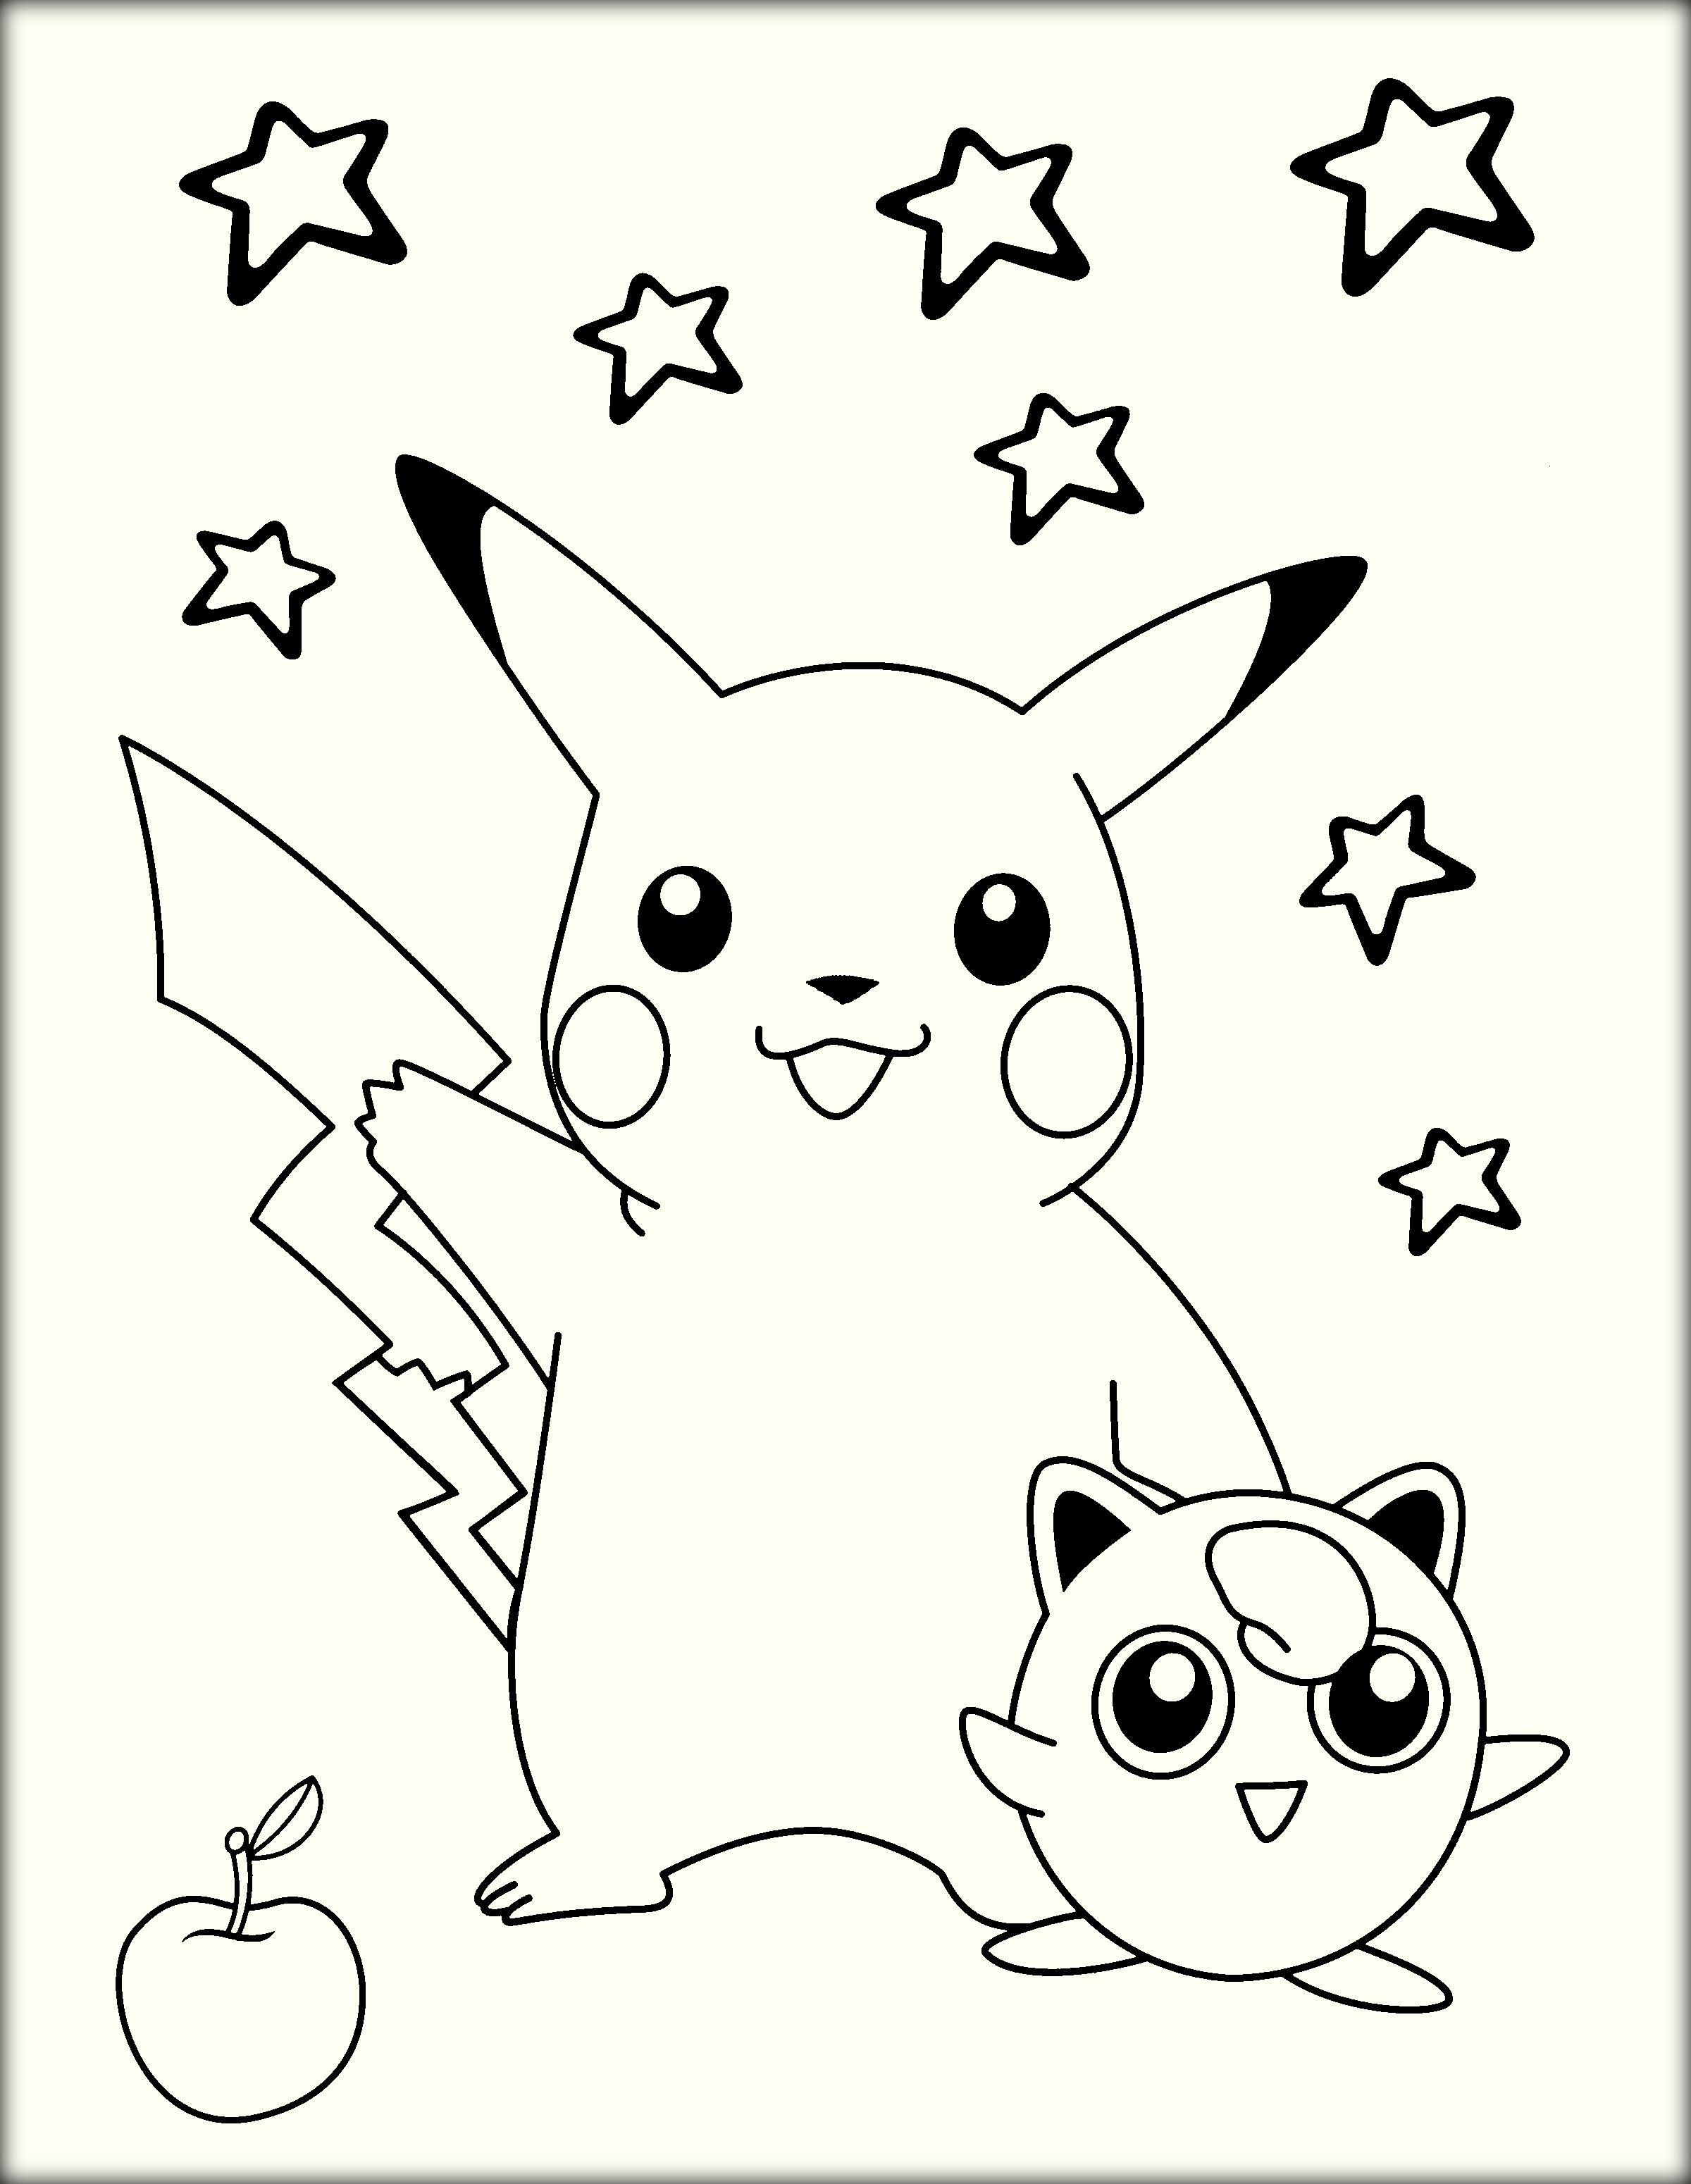 2400x3100 Free Printable Pokemon Coloring Pages For Kids